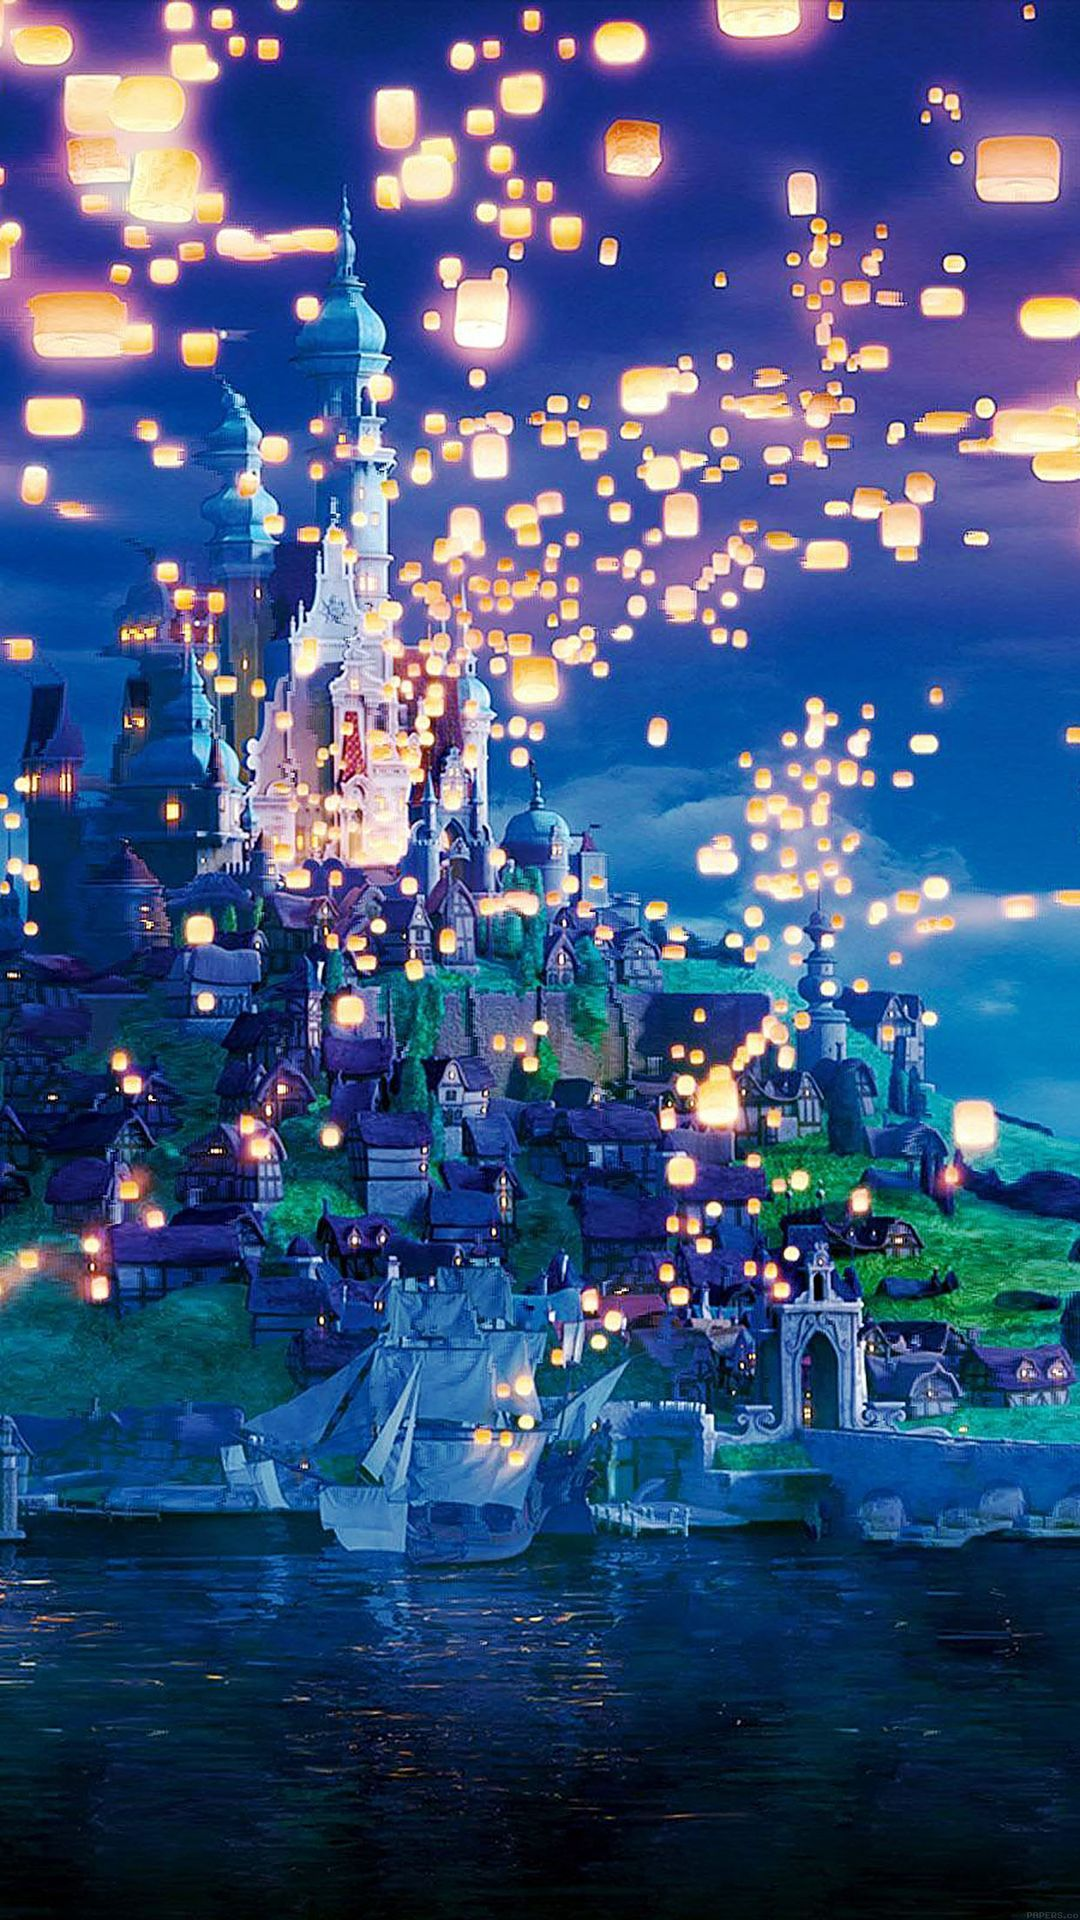 Tap image for more iPhone Disney wallpapers! Rapunzel dreams - @mobile9   Wallpaper for iPhone 5 ...